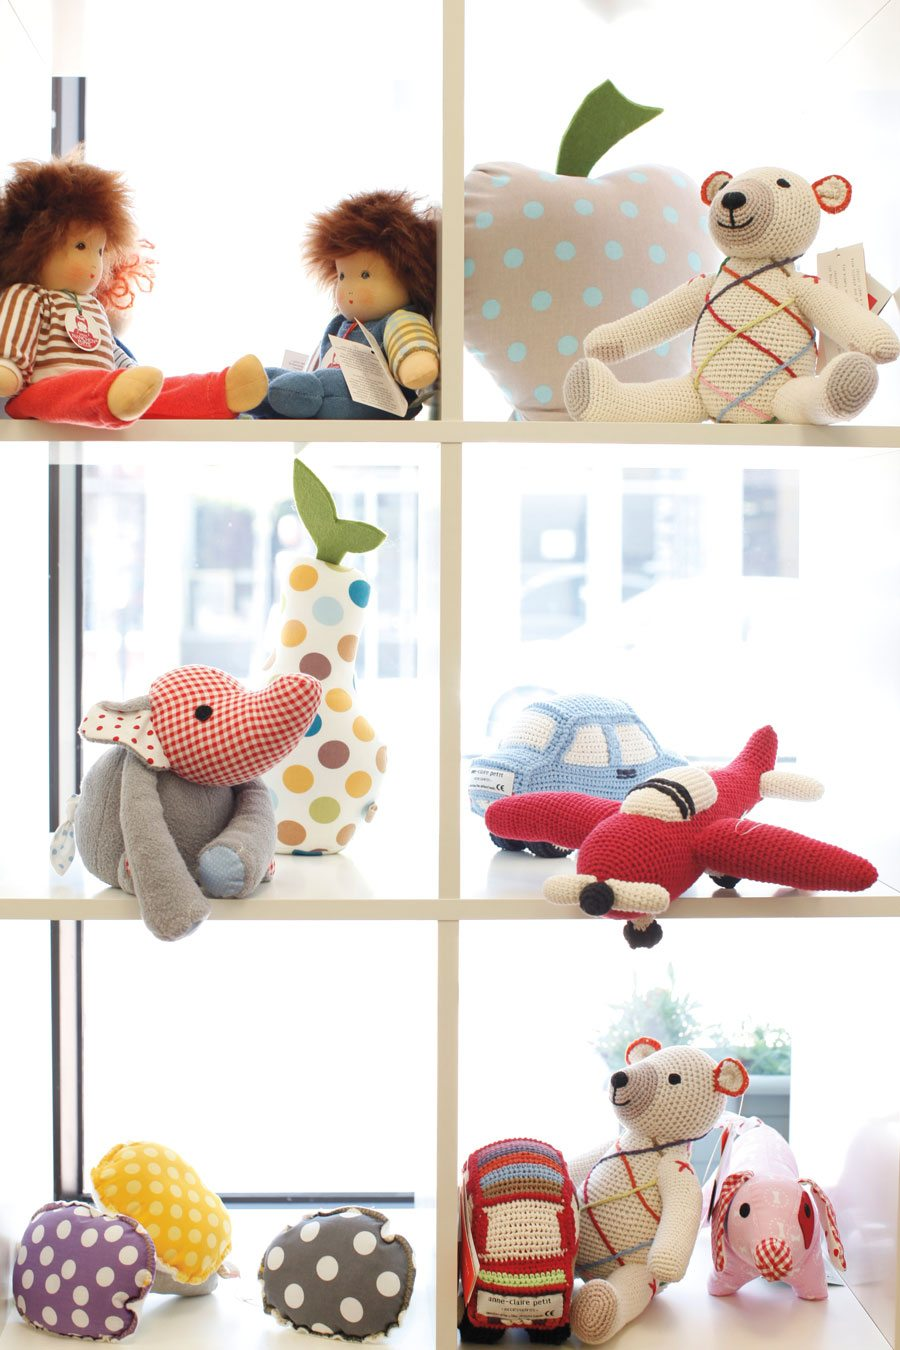 SHOP TALK: Peek-a-boo Natural Toys & Accessories